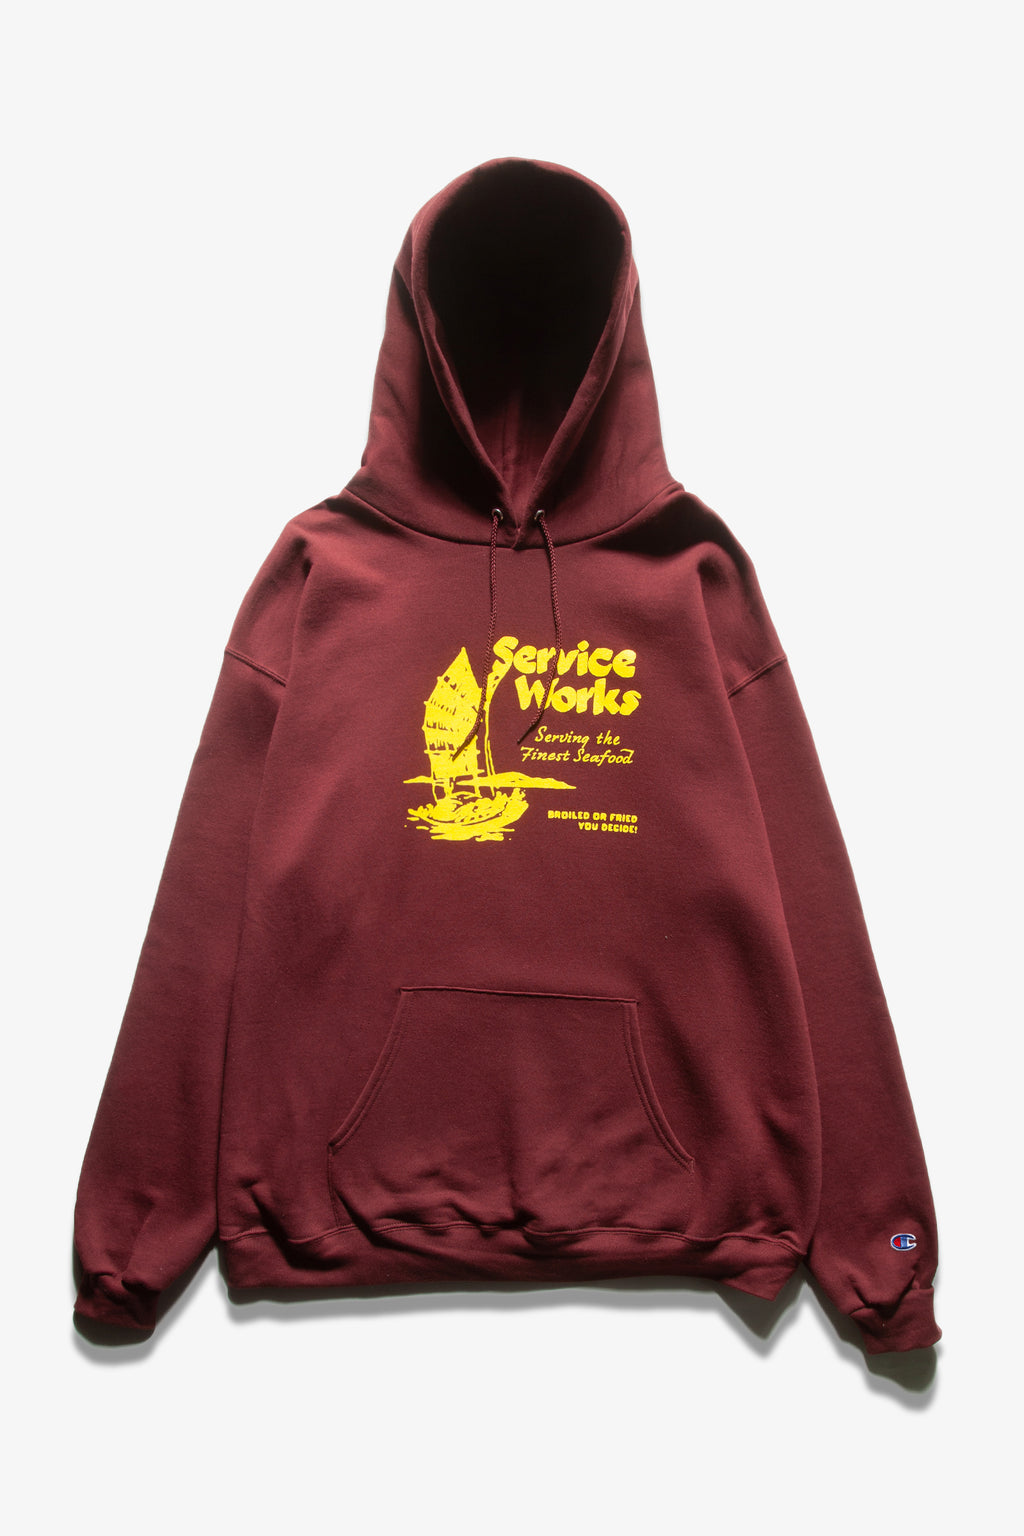 Service Works - Sail Away Hoodie - Burgundy